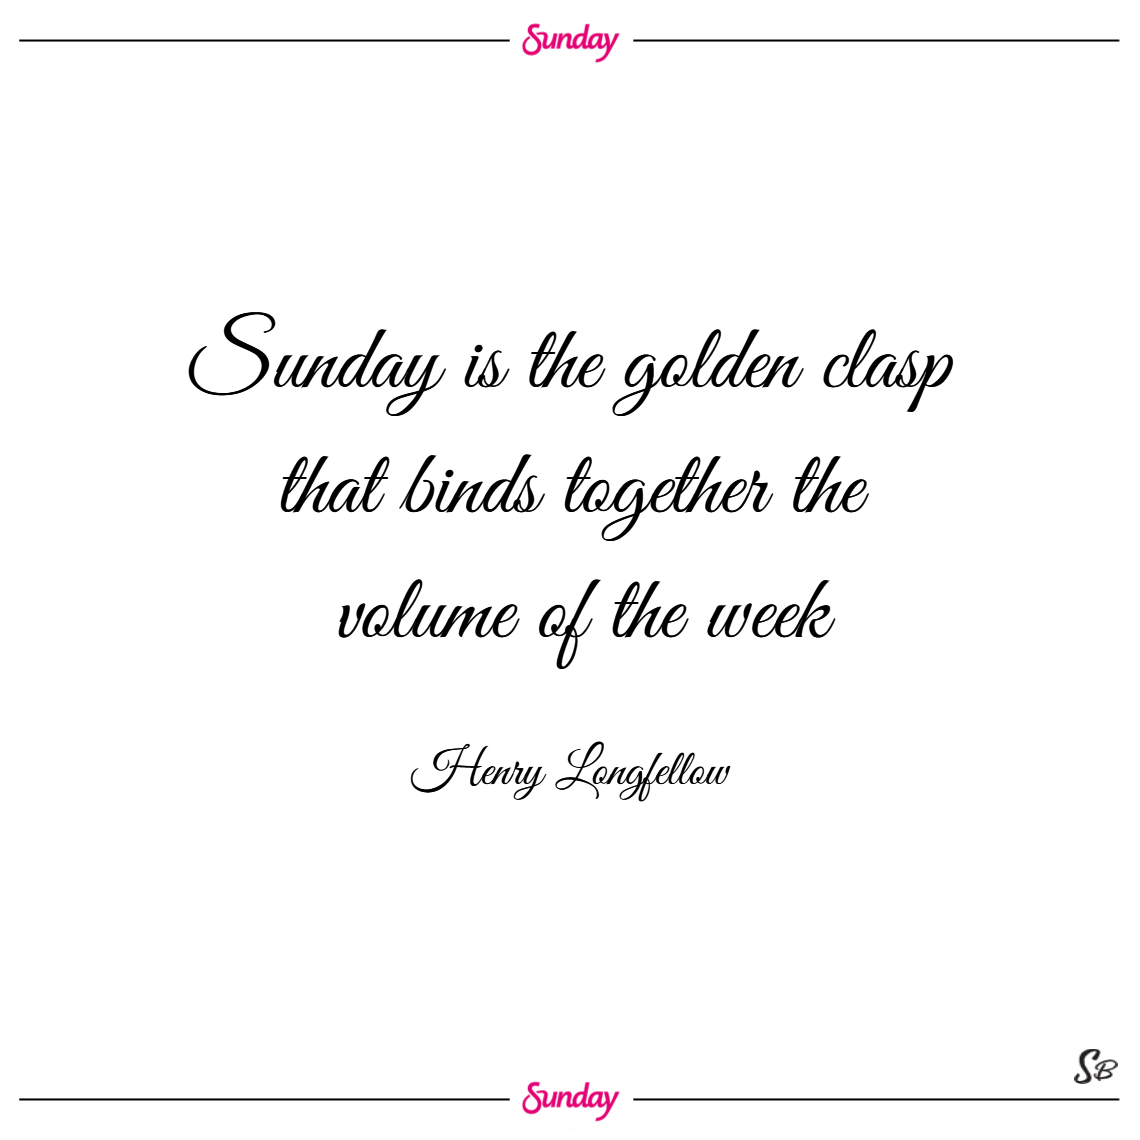 Sunday is the golden clasp that binds together the volume of the week. – henry wadsworth longfellow